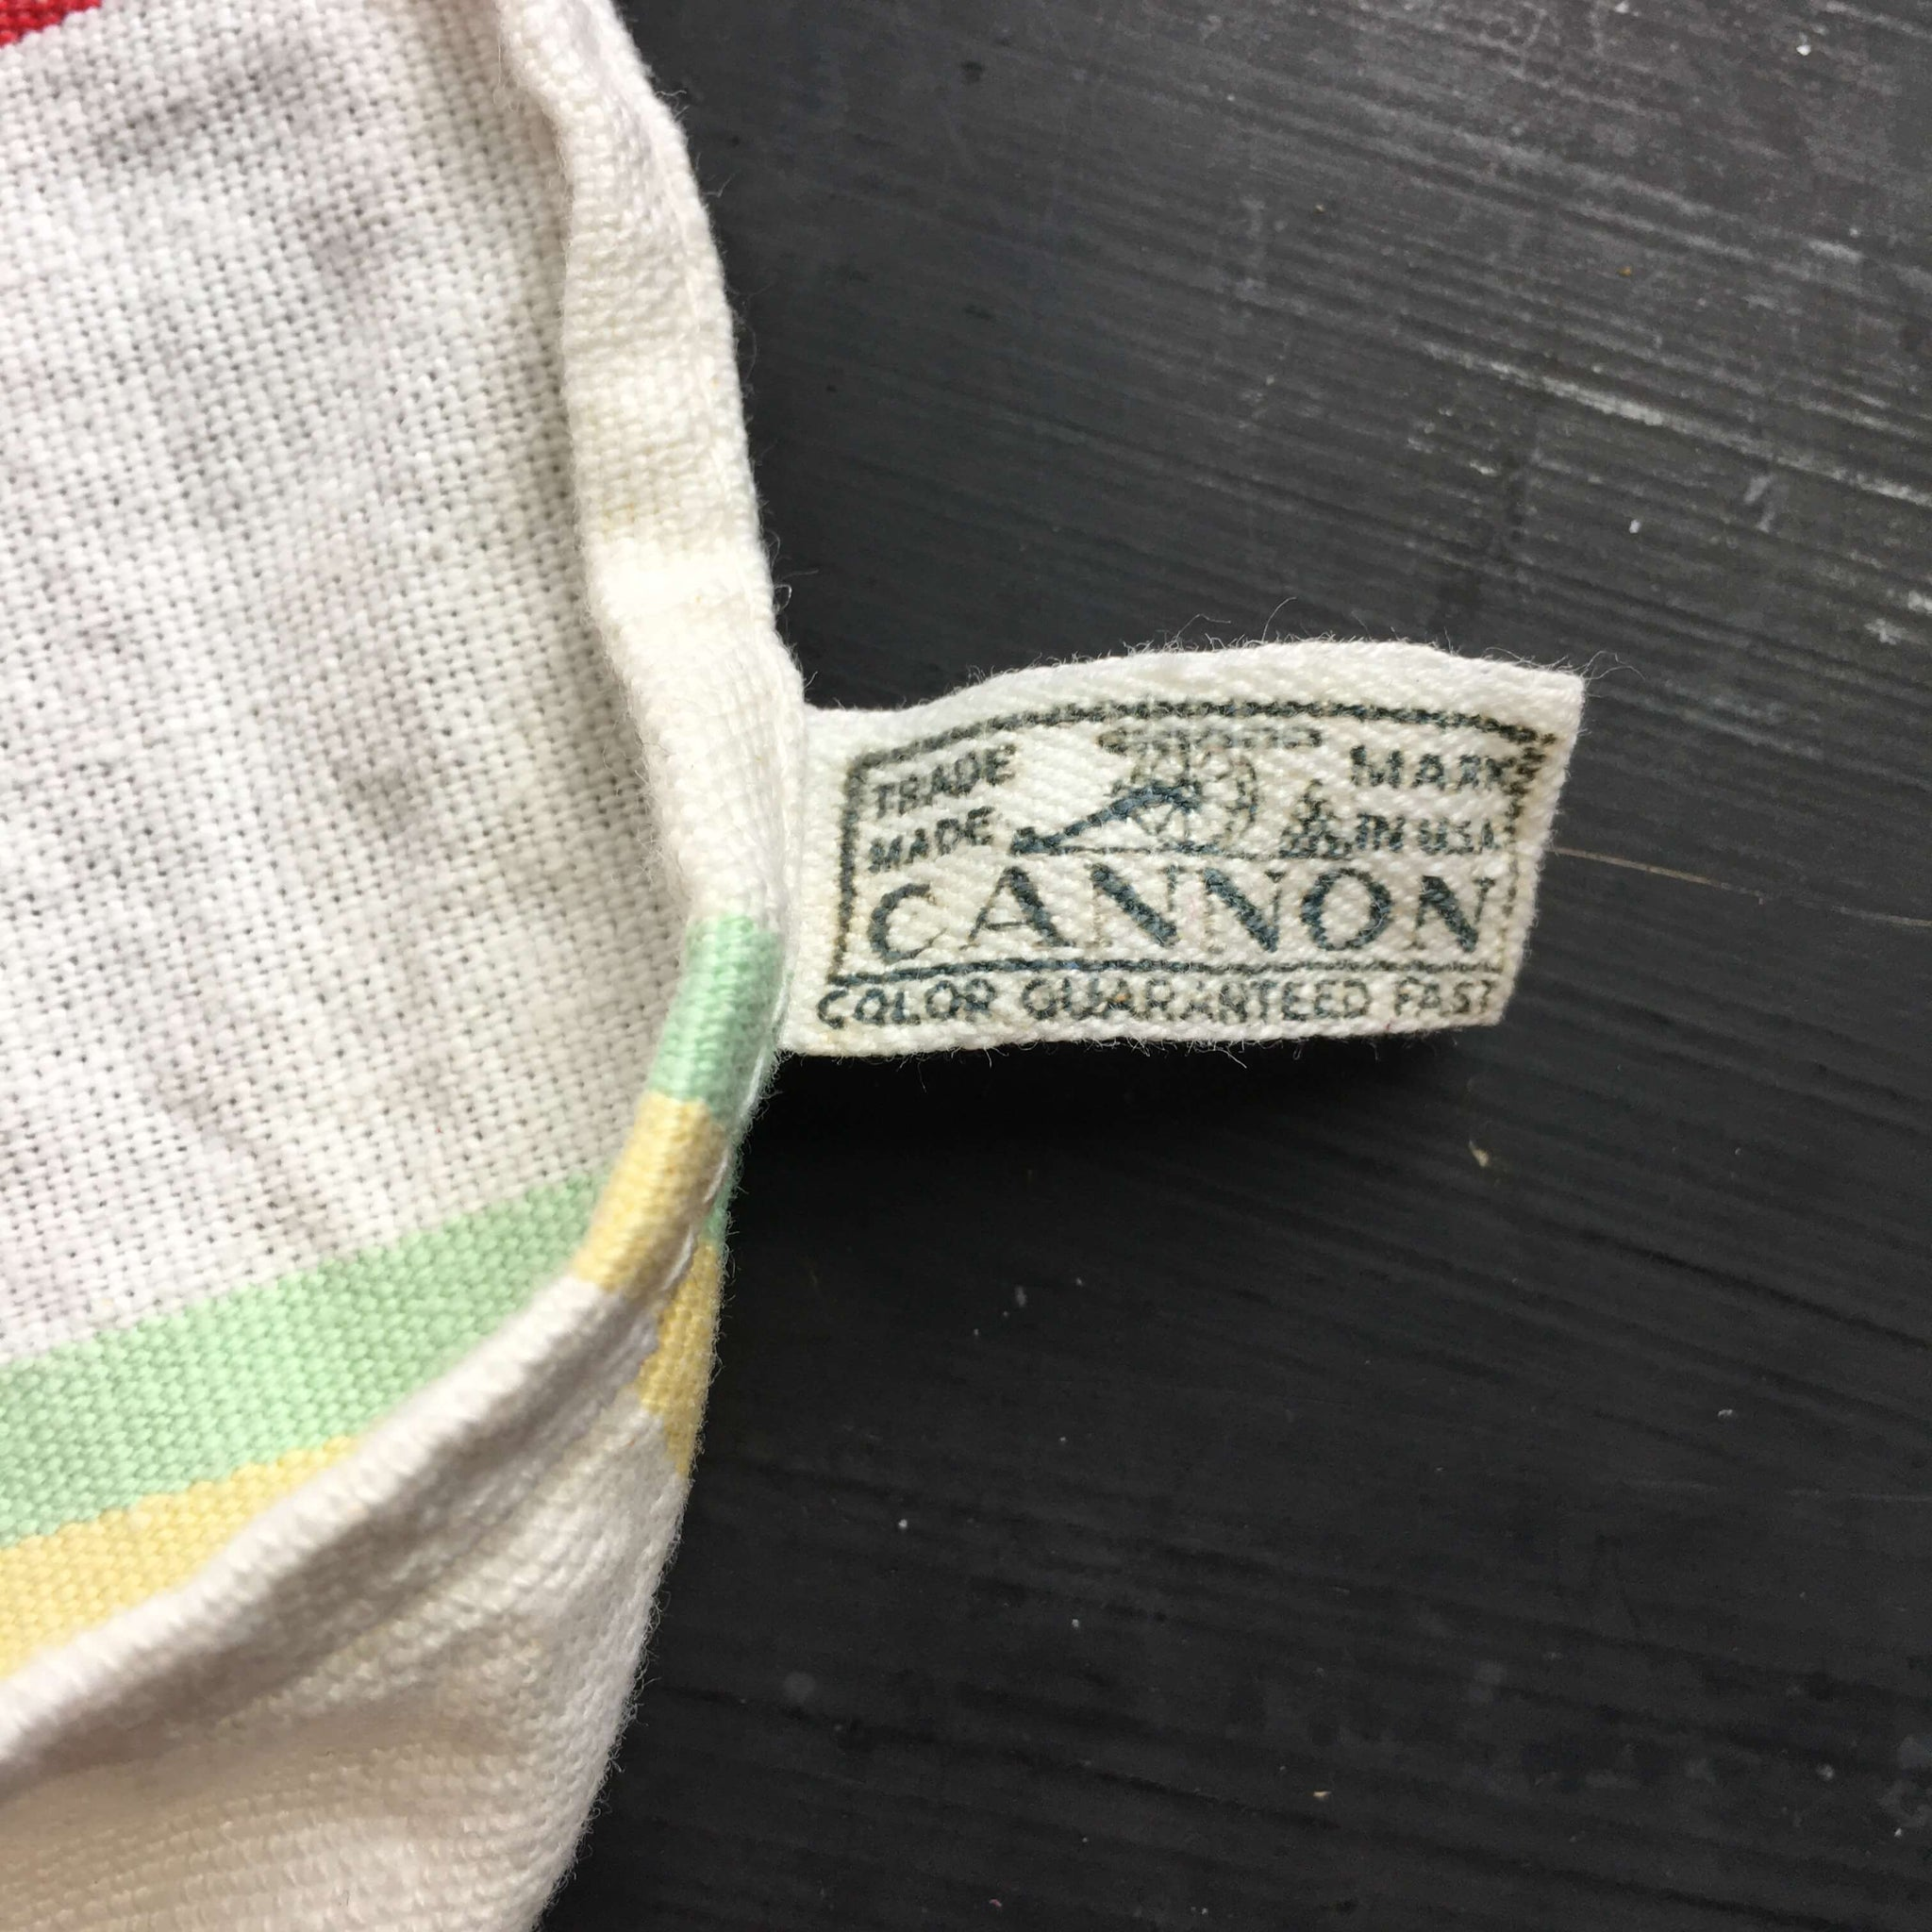 Vintage 1950's Striped Cotton Kitchen Towel by Cannon - Multicolor Stripes